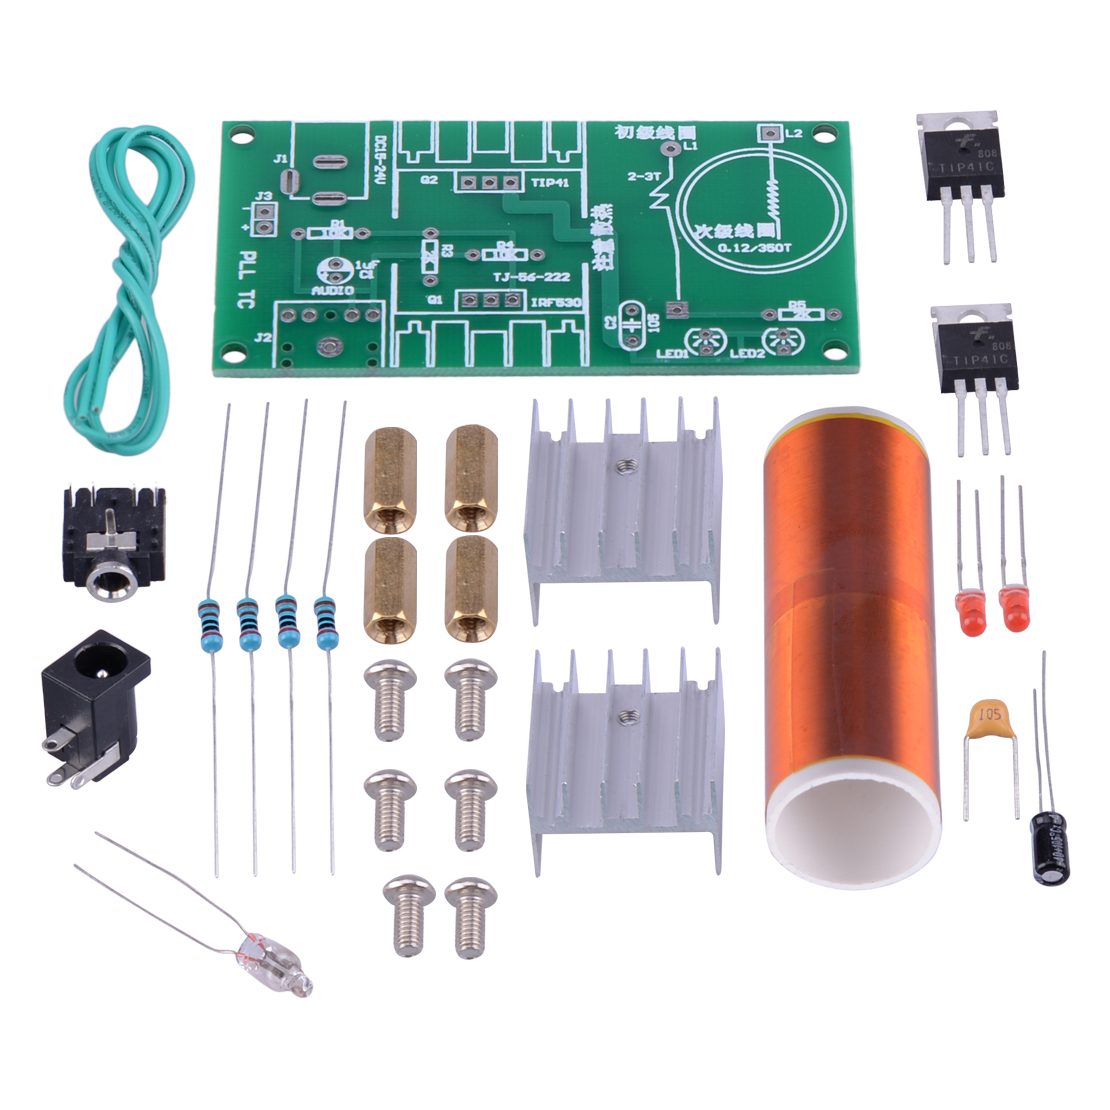 LETAOSK Mini Tesla Coil DIY Project Kit 15W Plasma Speaker Electronic Field Music Player Audio Accessories